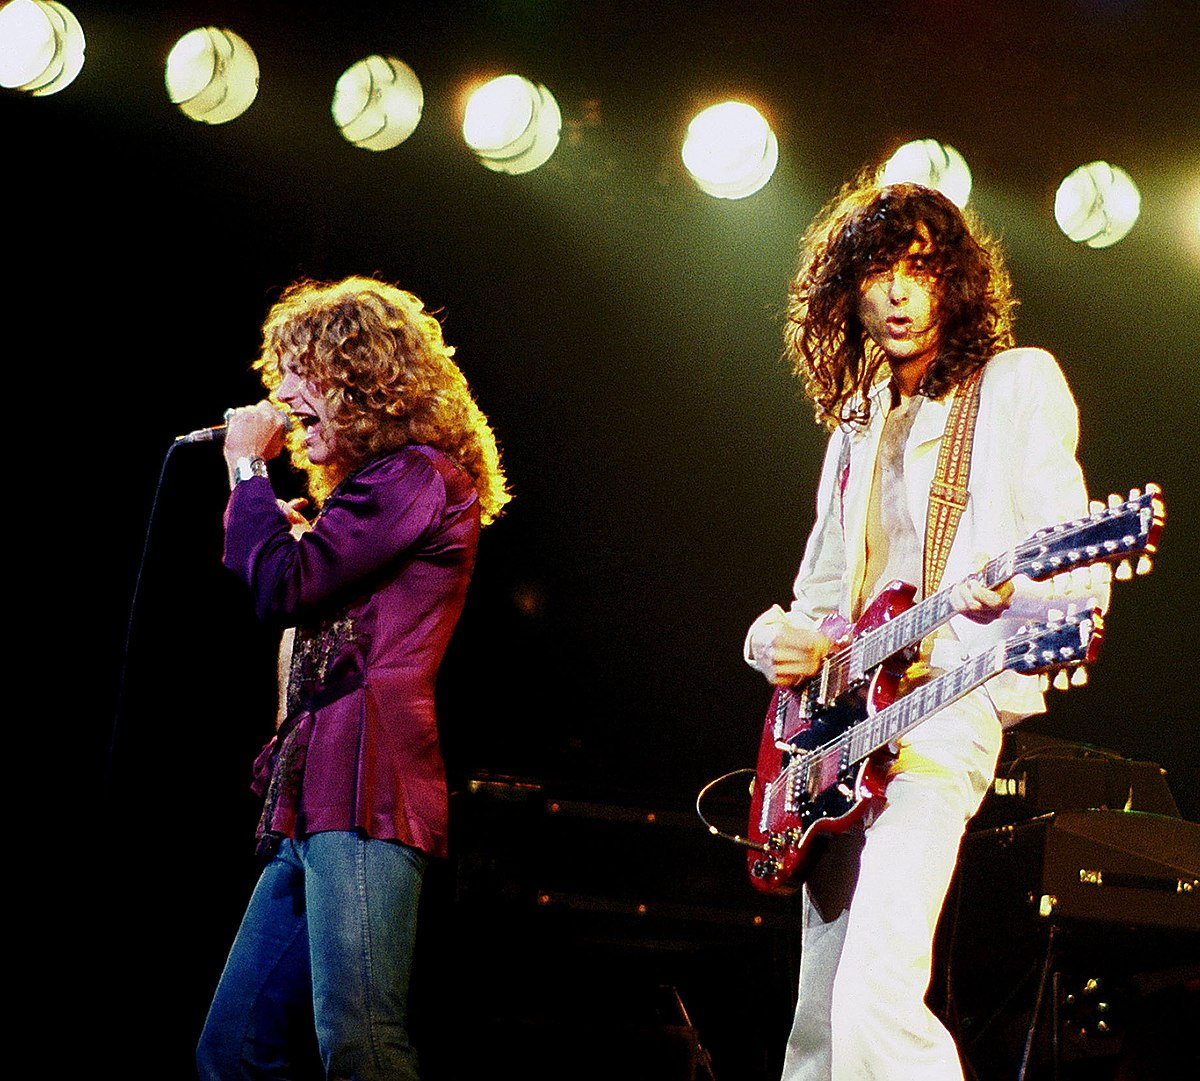 led zeppelin concerts wikipedia. Black Bedroom Furniture Sets. Home Design Ideas